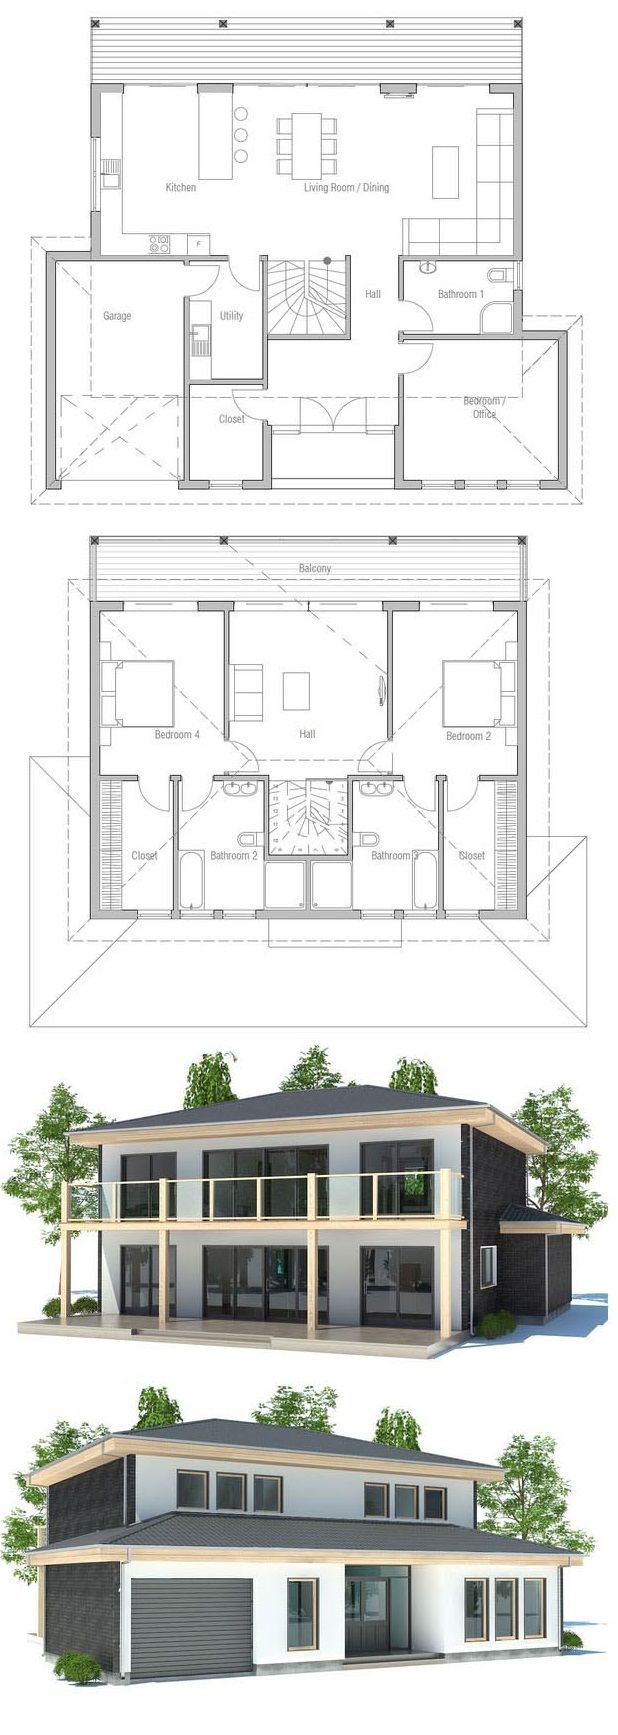 Modern house plan with full wall height